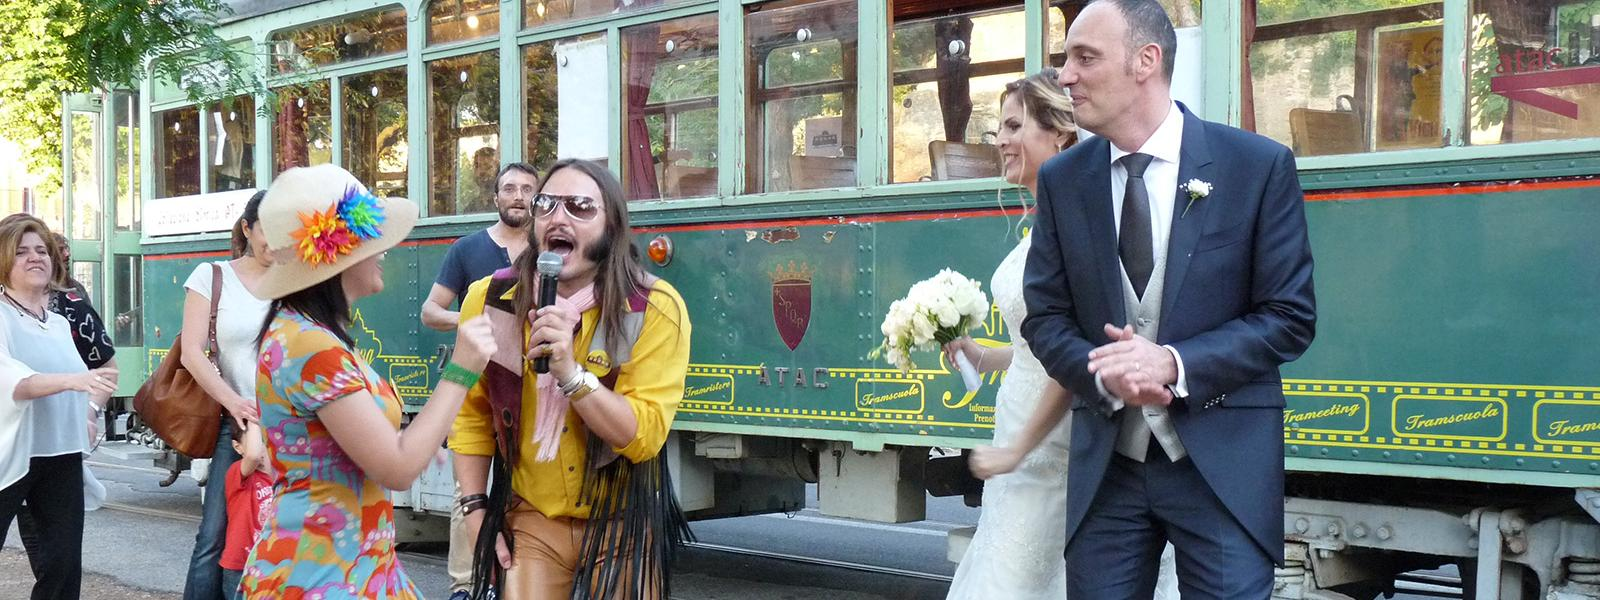 Tram Tracks | Wedding Party Tour at Rome